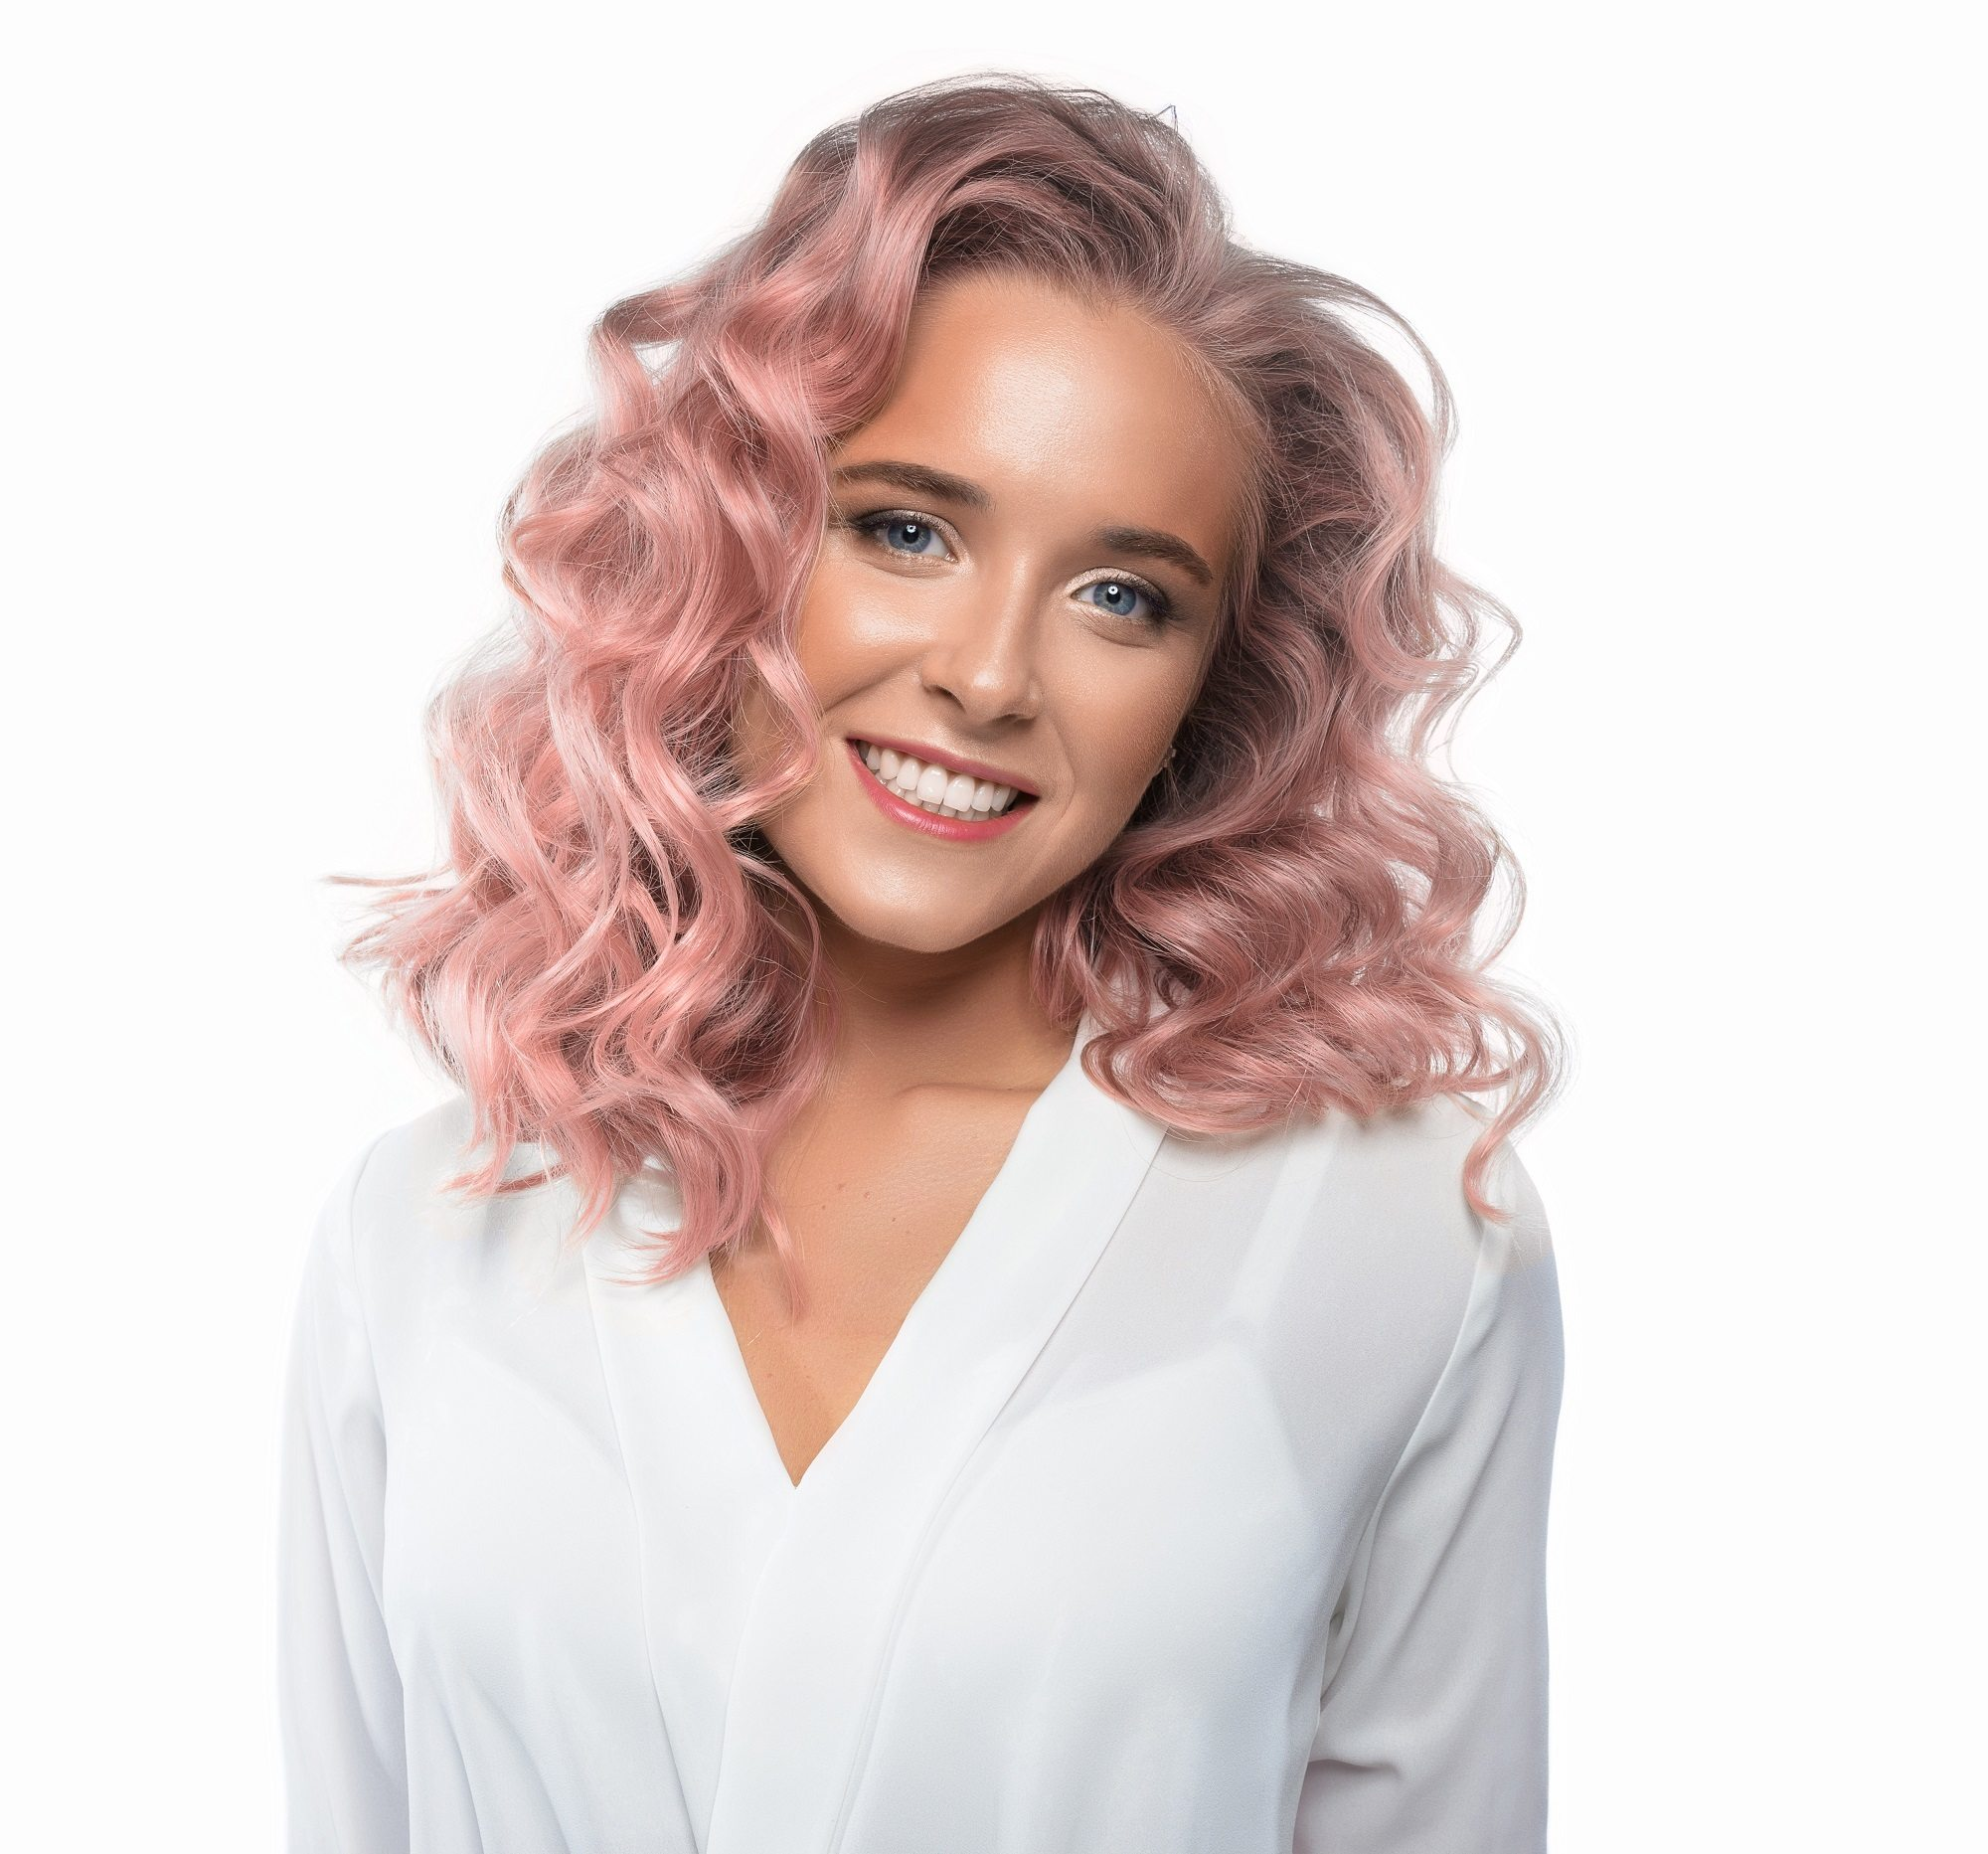 Hair color for curly hair: Closeup shot of a woman with pink shoulder-length curly hair wearing white top against white background